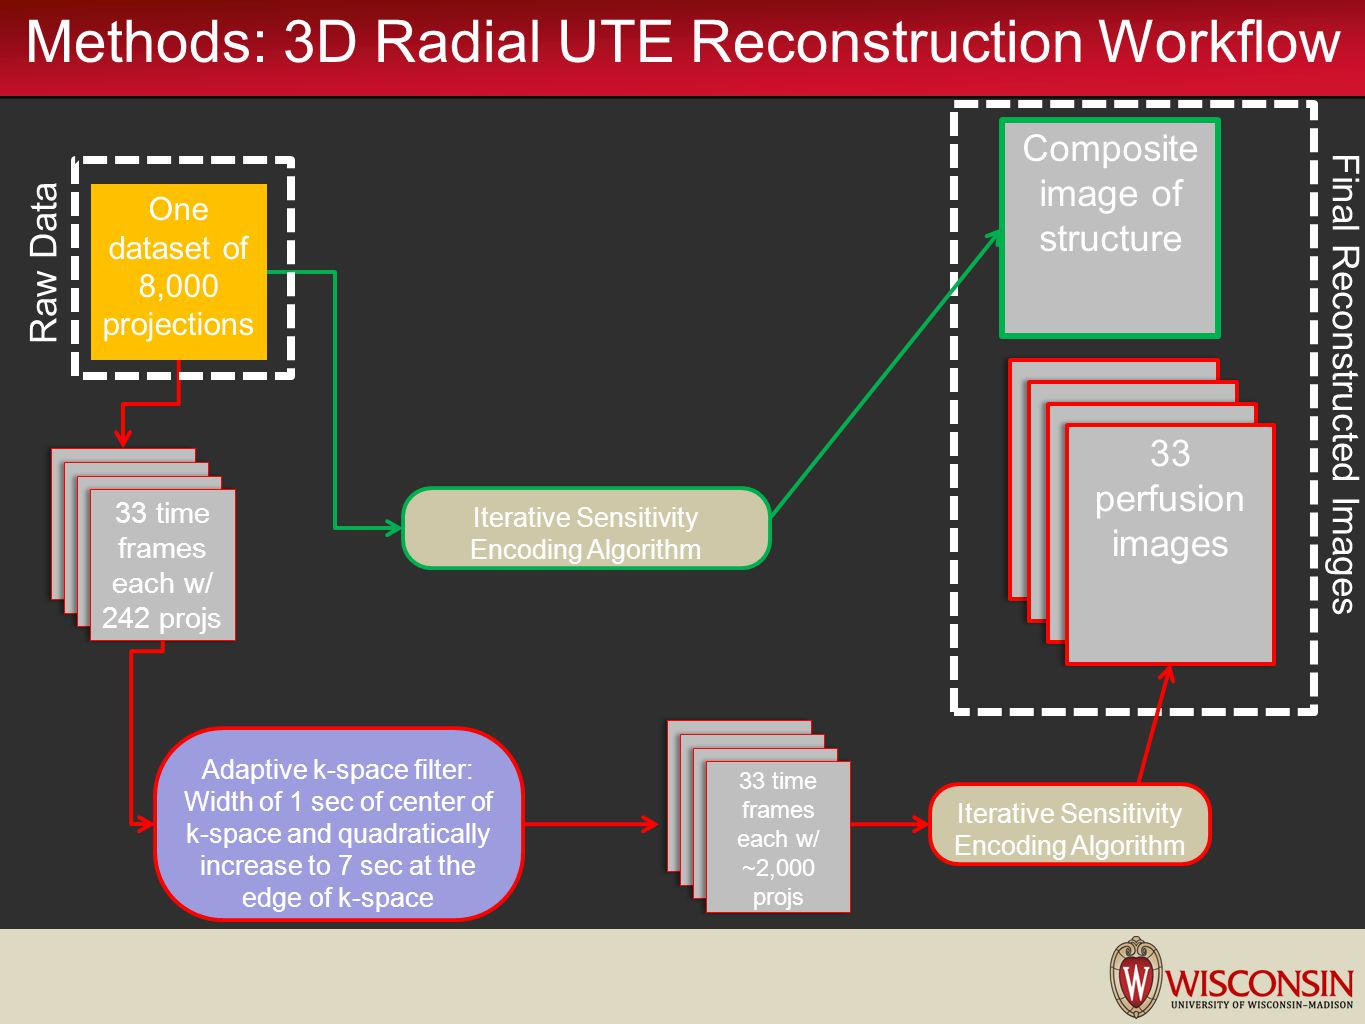 Methods: 3D Radial UTE Reconstruction Workflow